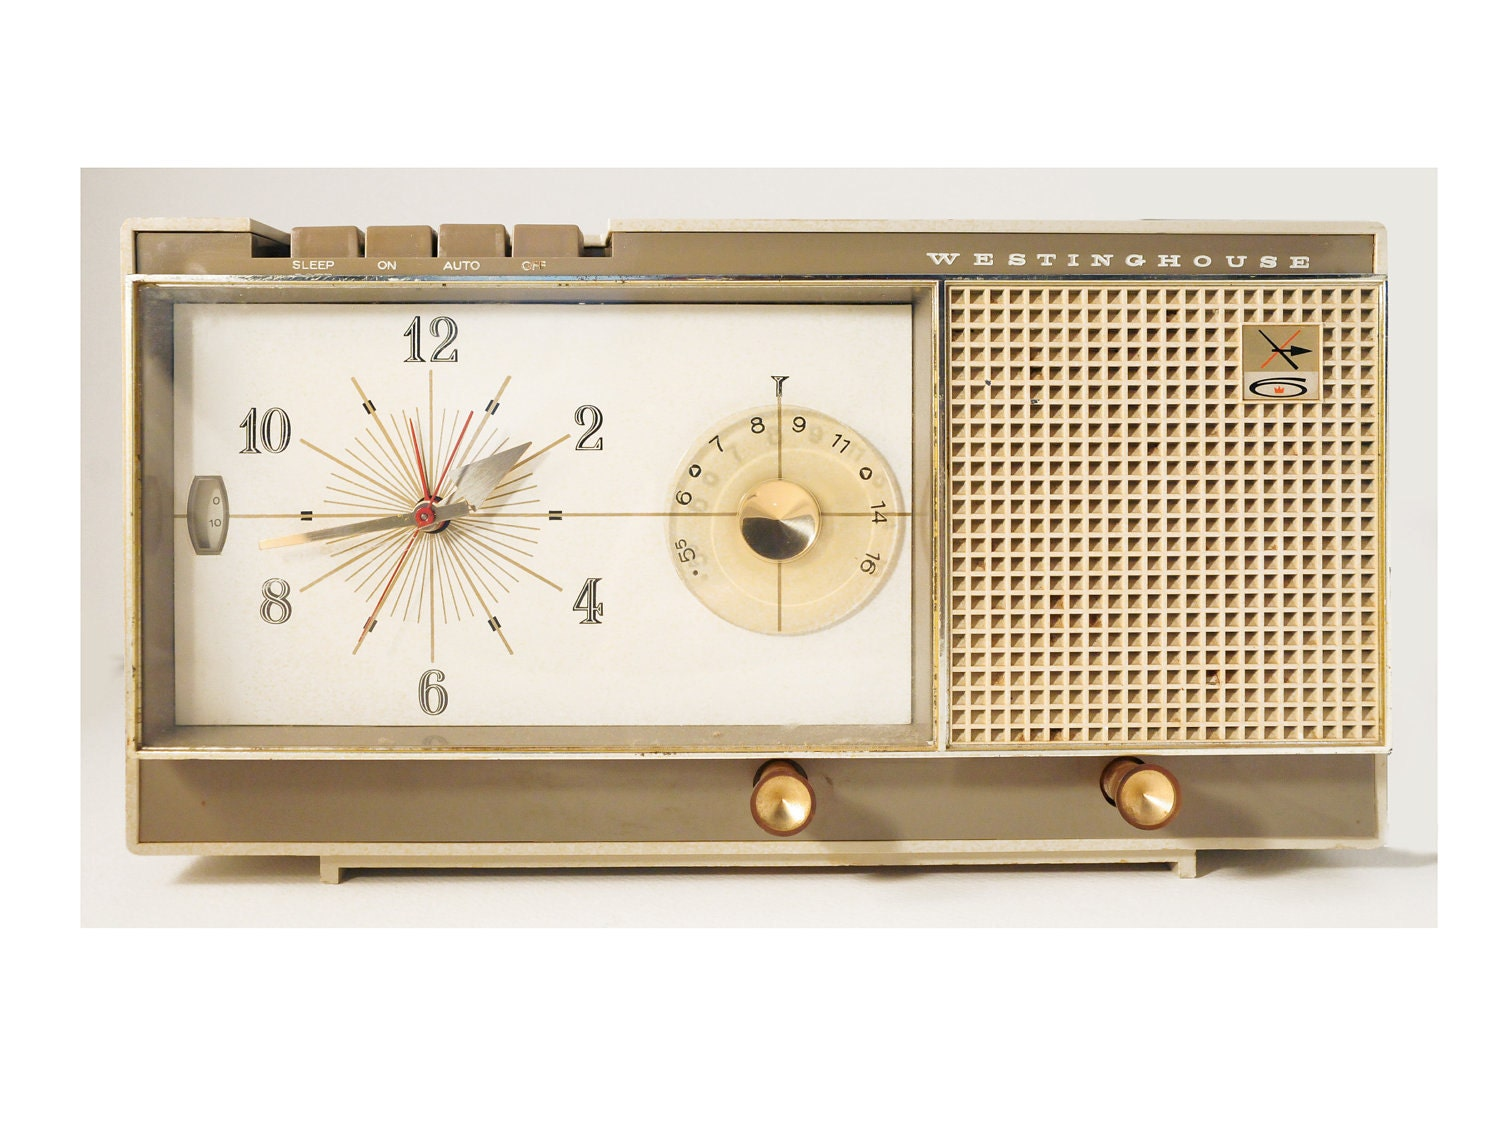 Mid Century Modern Clock Radio With Retro Styling And Vintage